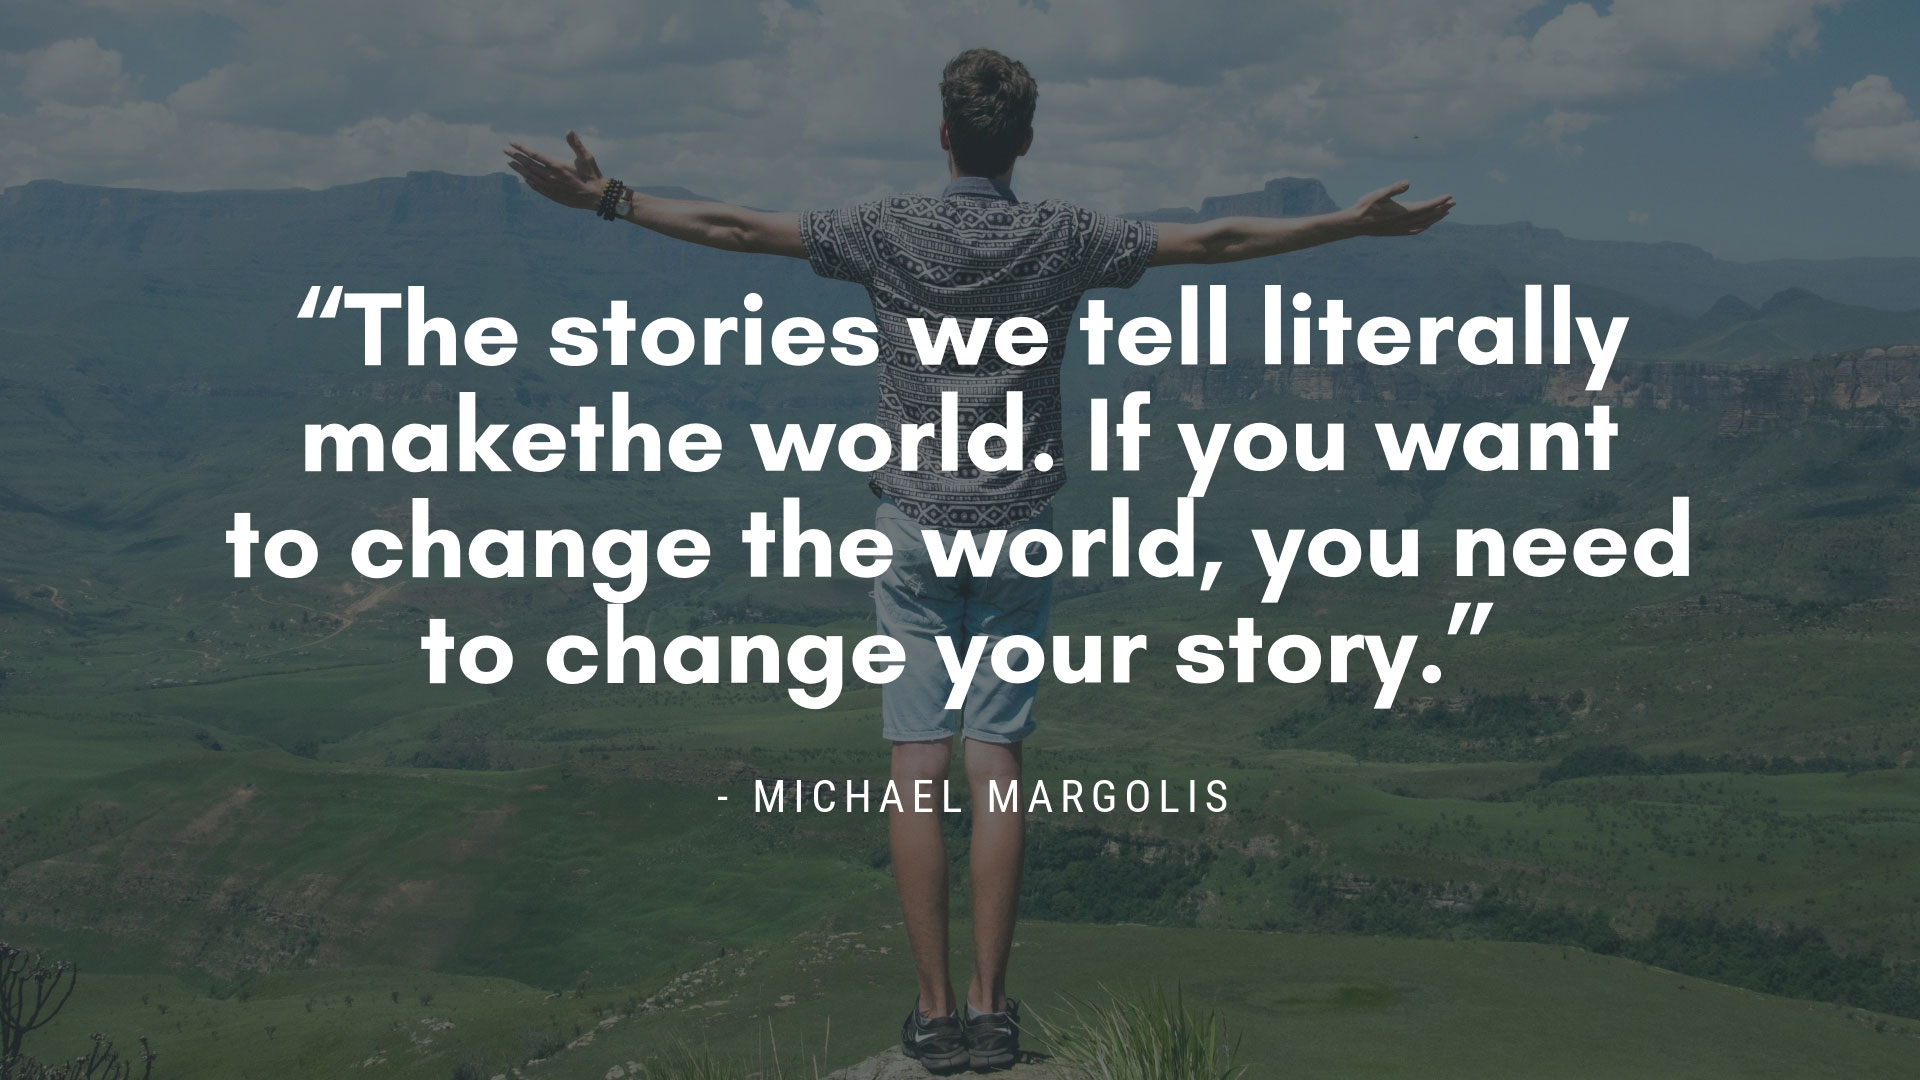 Michael Margolis Storytelling Quote